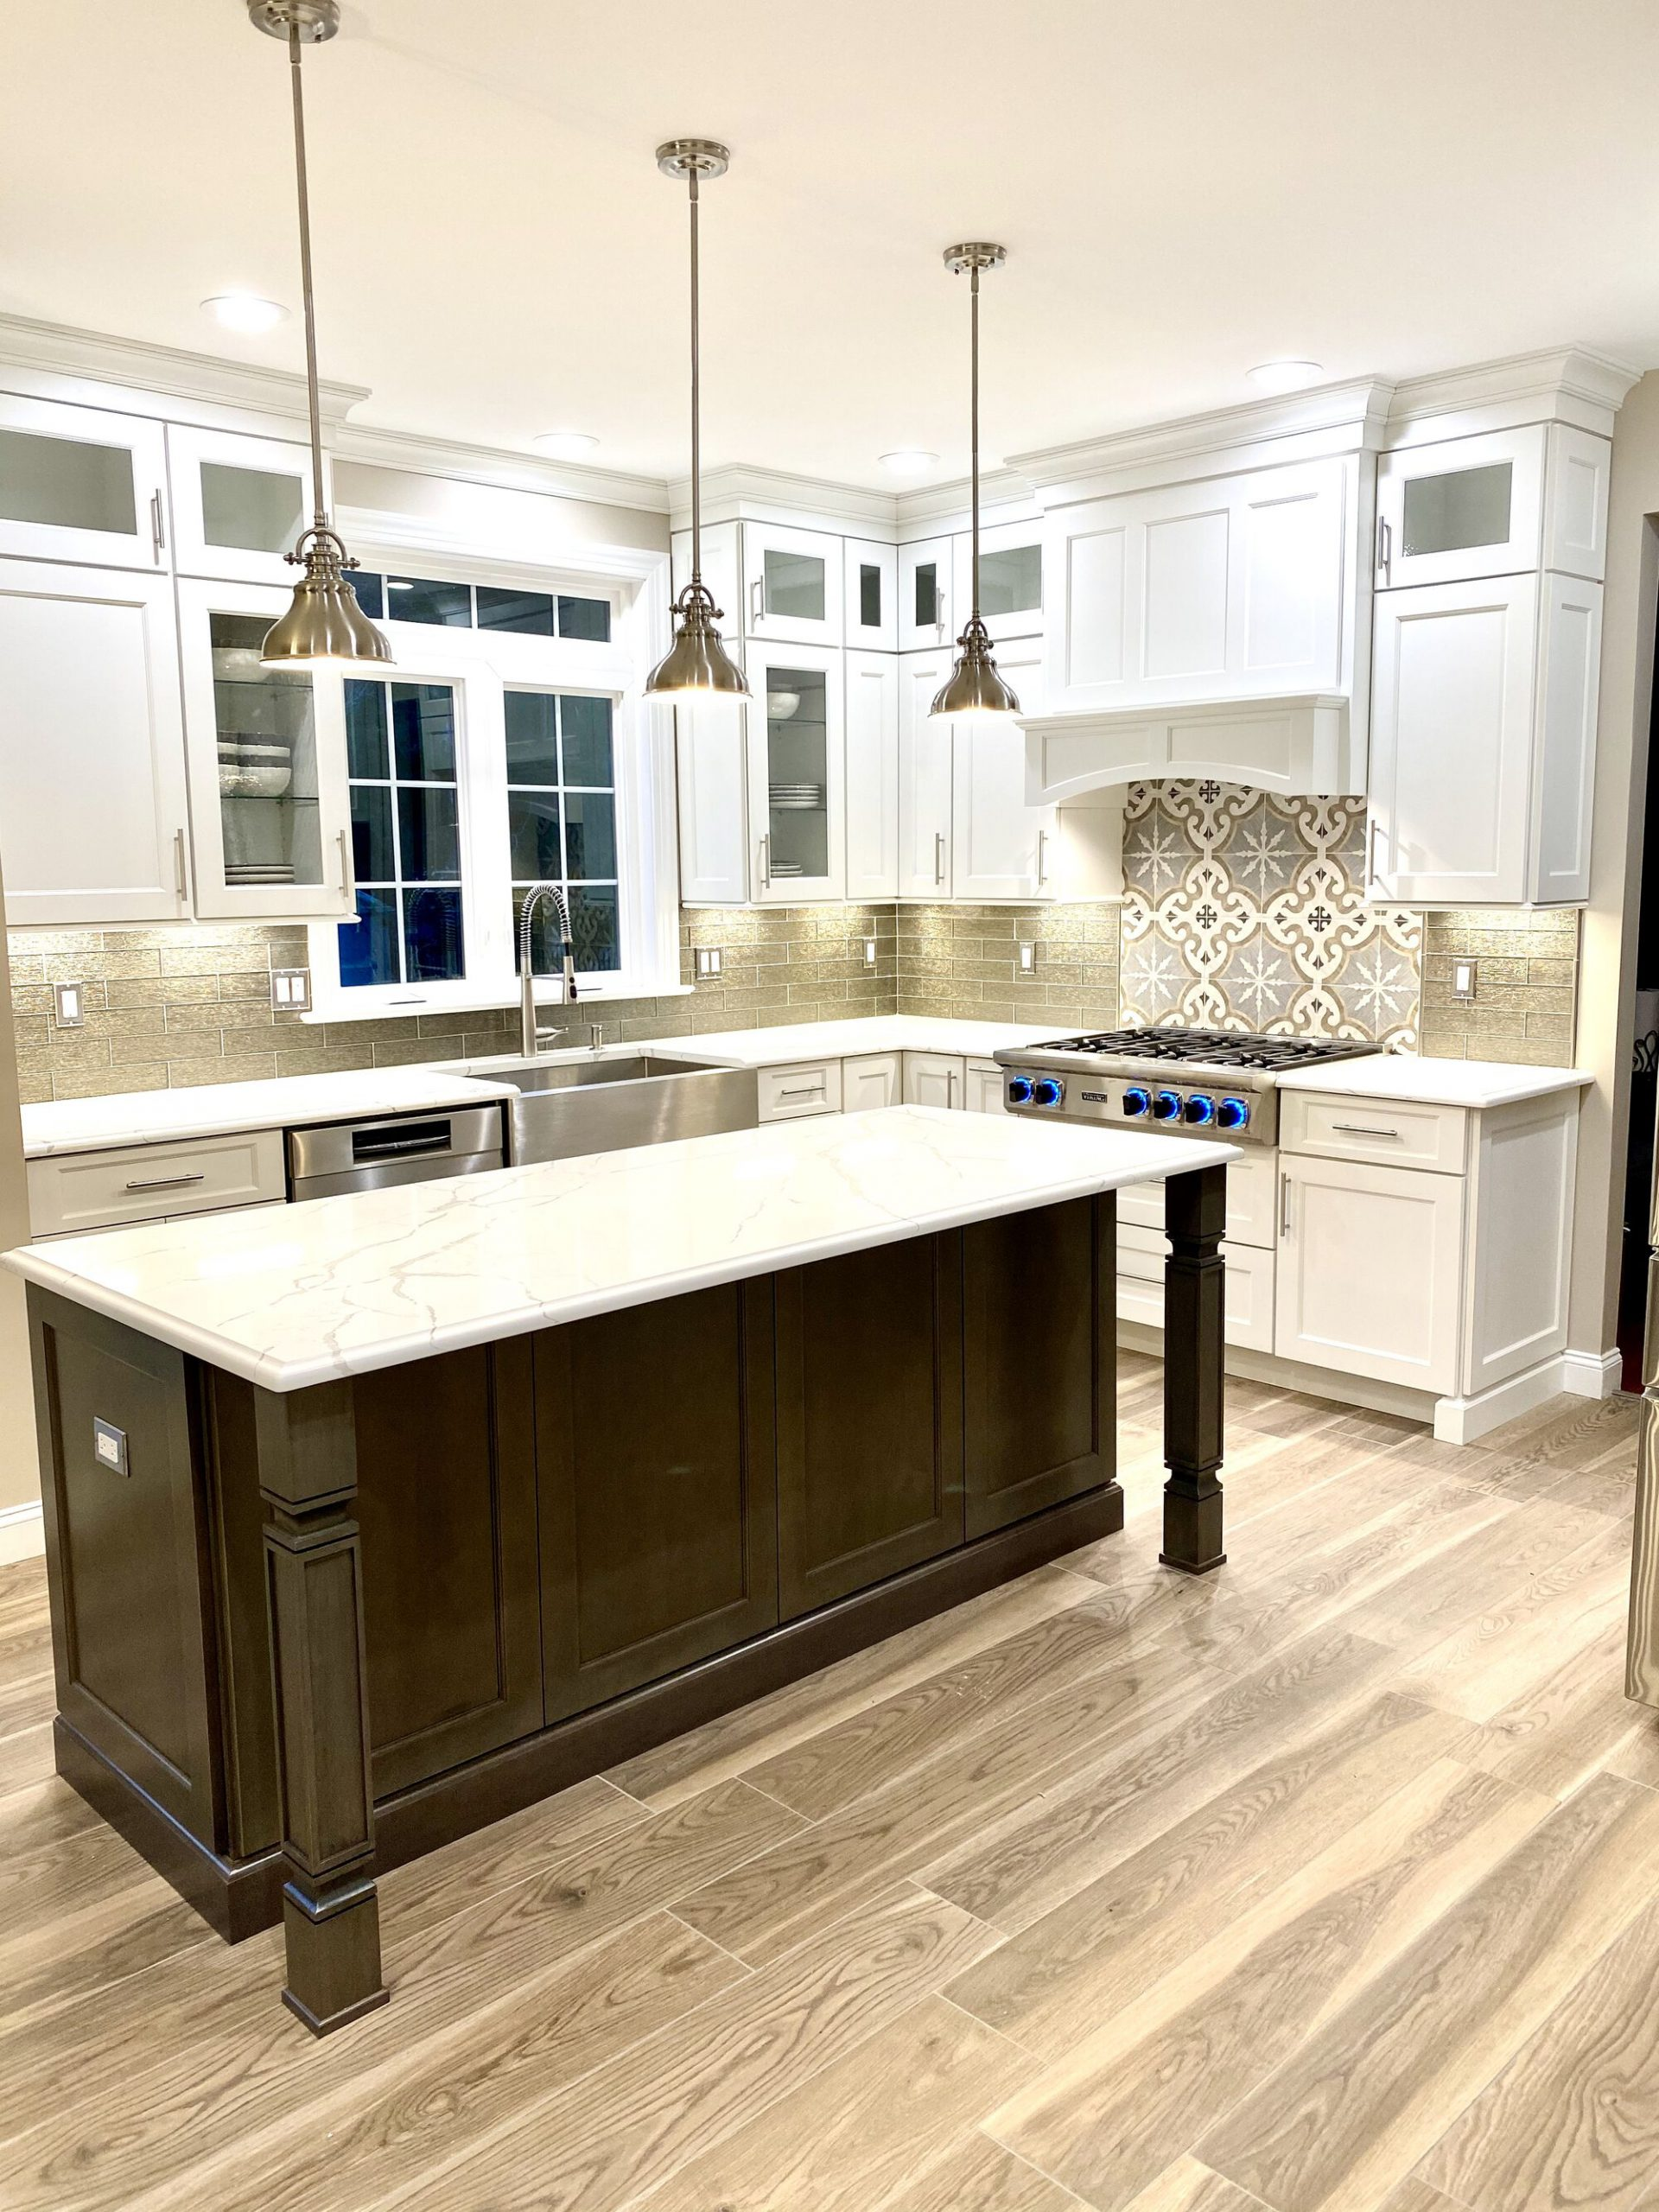 Affordable Custom Kitchen Remodeling with Professional Design in New Jersey